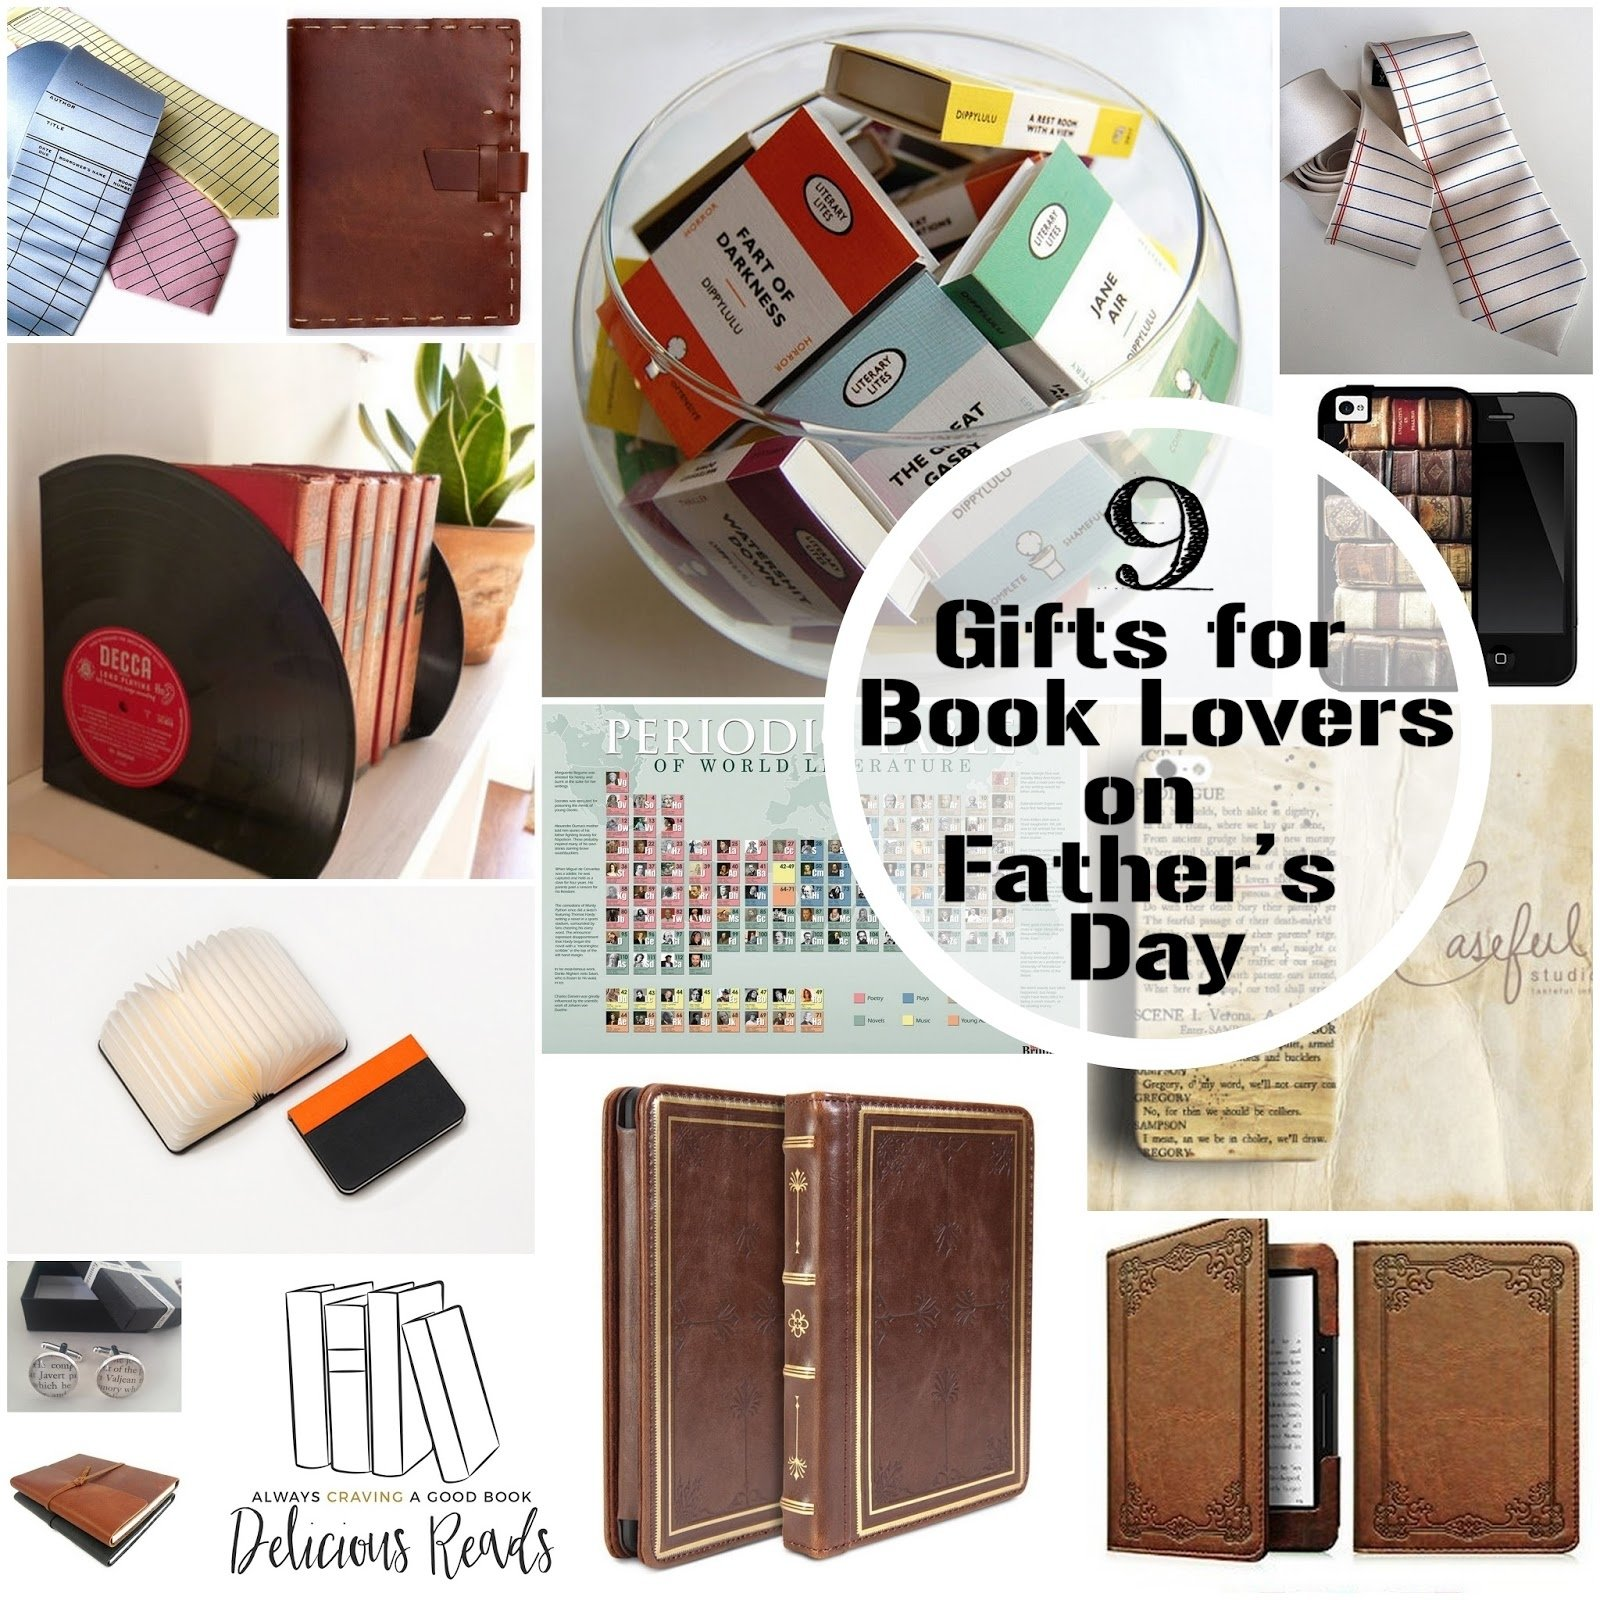 10 Spectacular Gift Ideas For Book Lovers delicious reads what daddy wants 9 gifts for your book lover on 2020